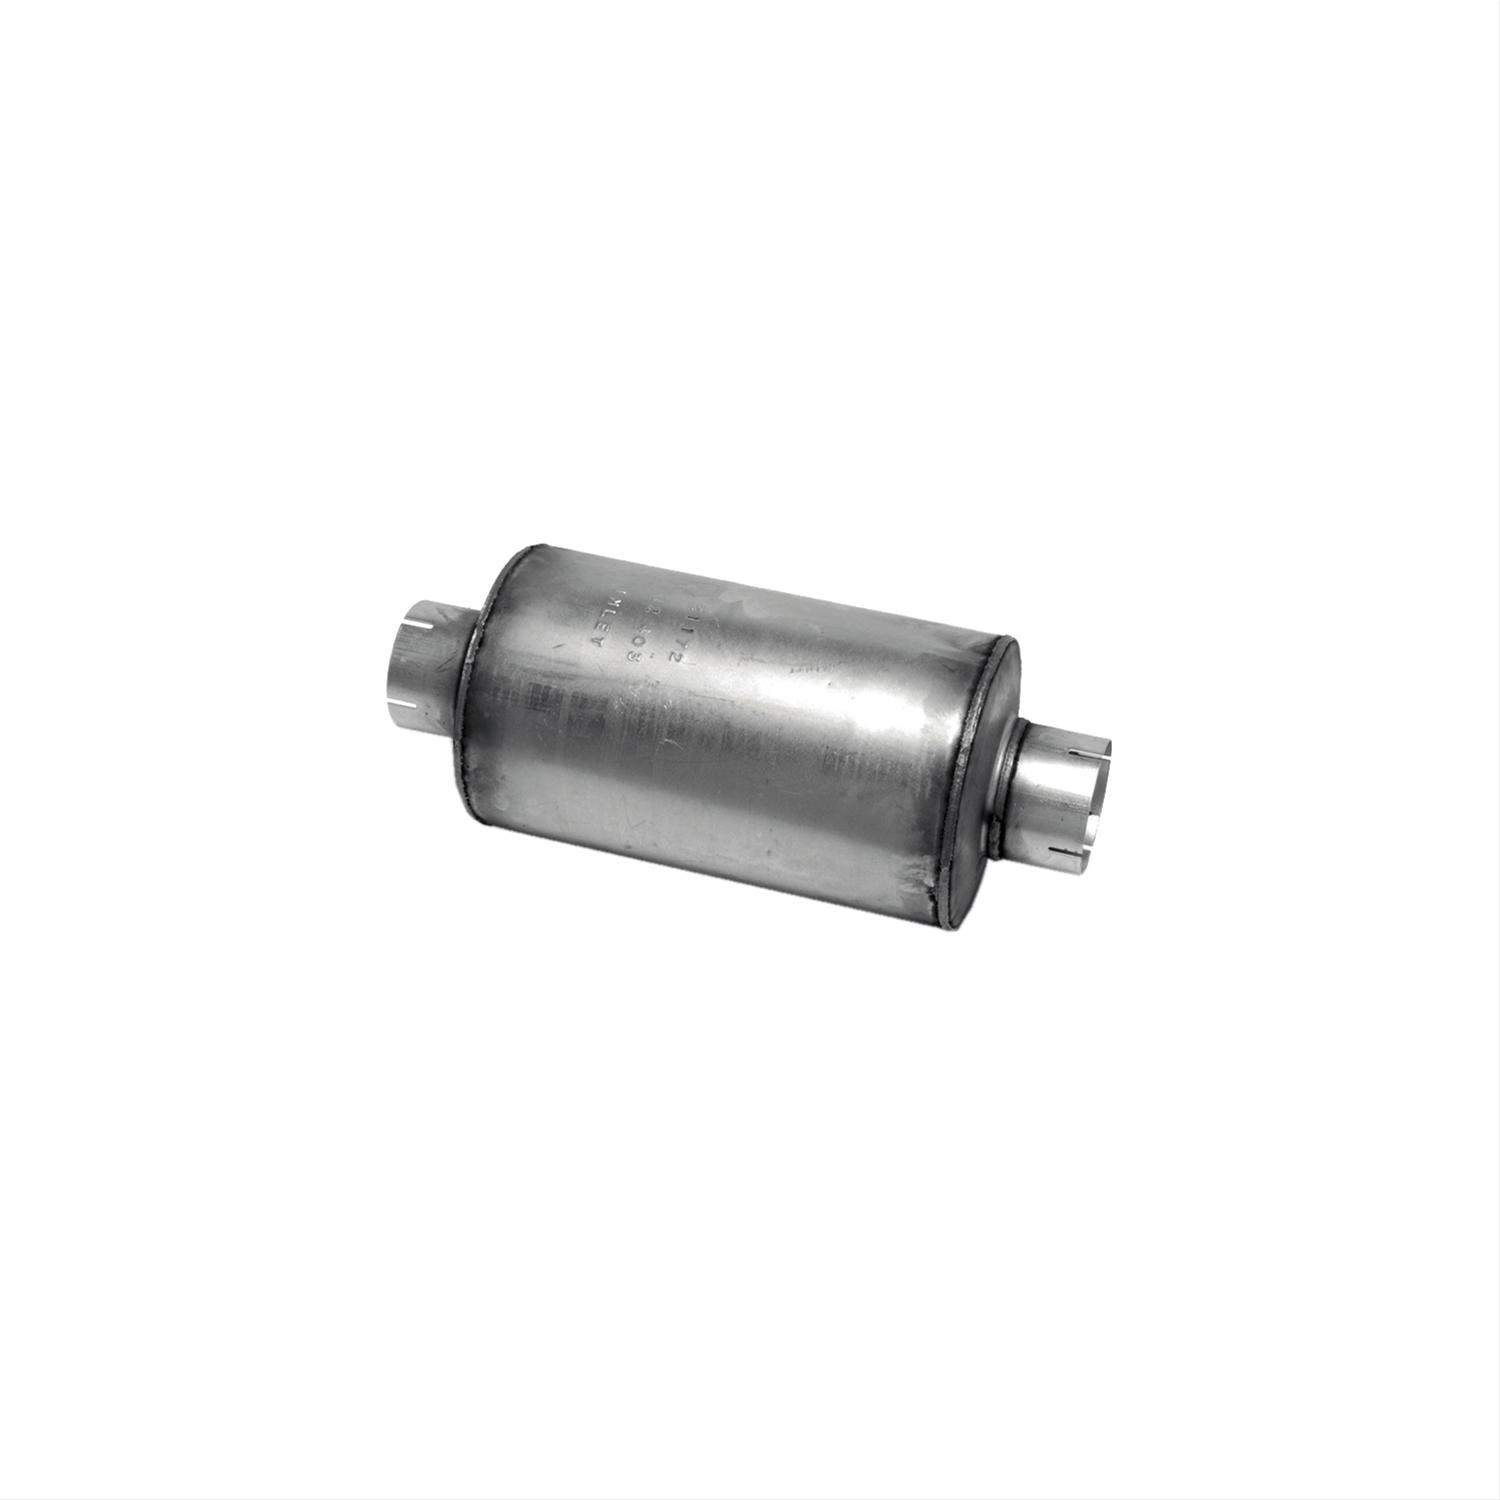 Dynomax 21172 Commercial Vehicle Muffler